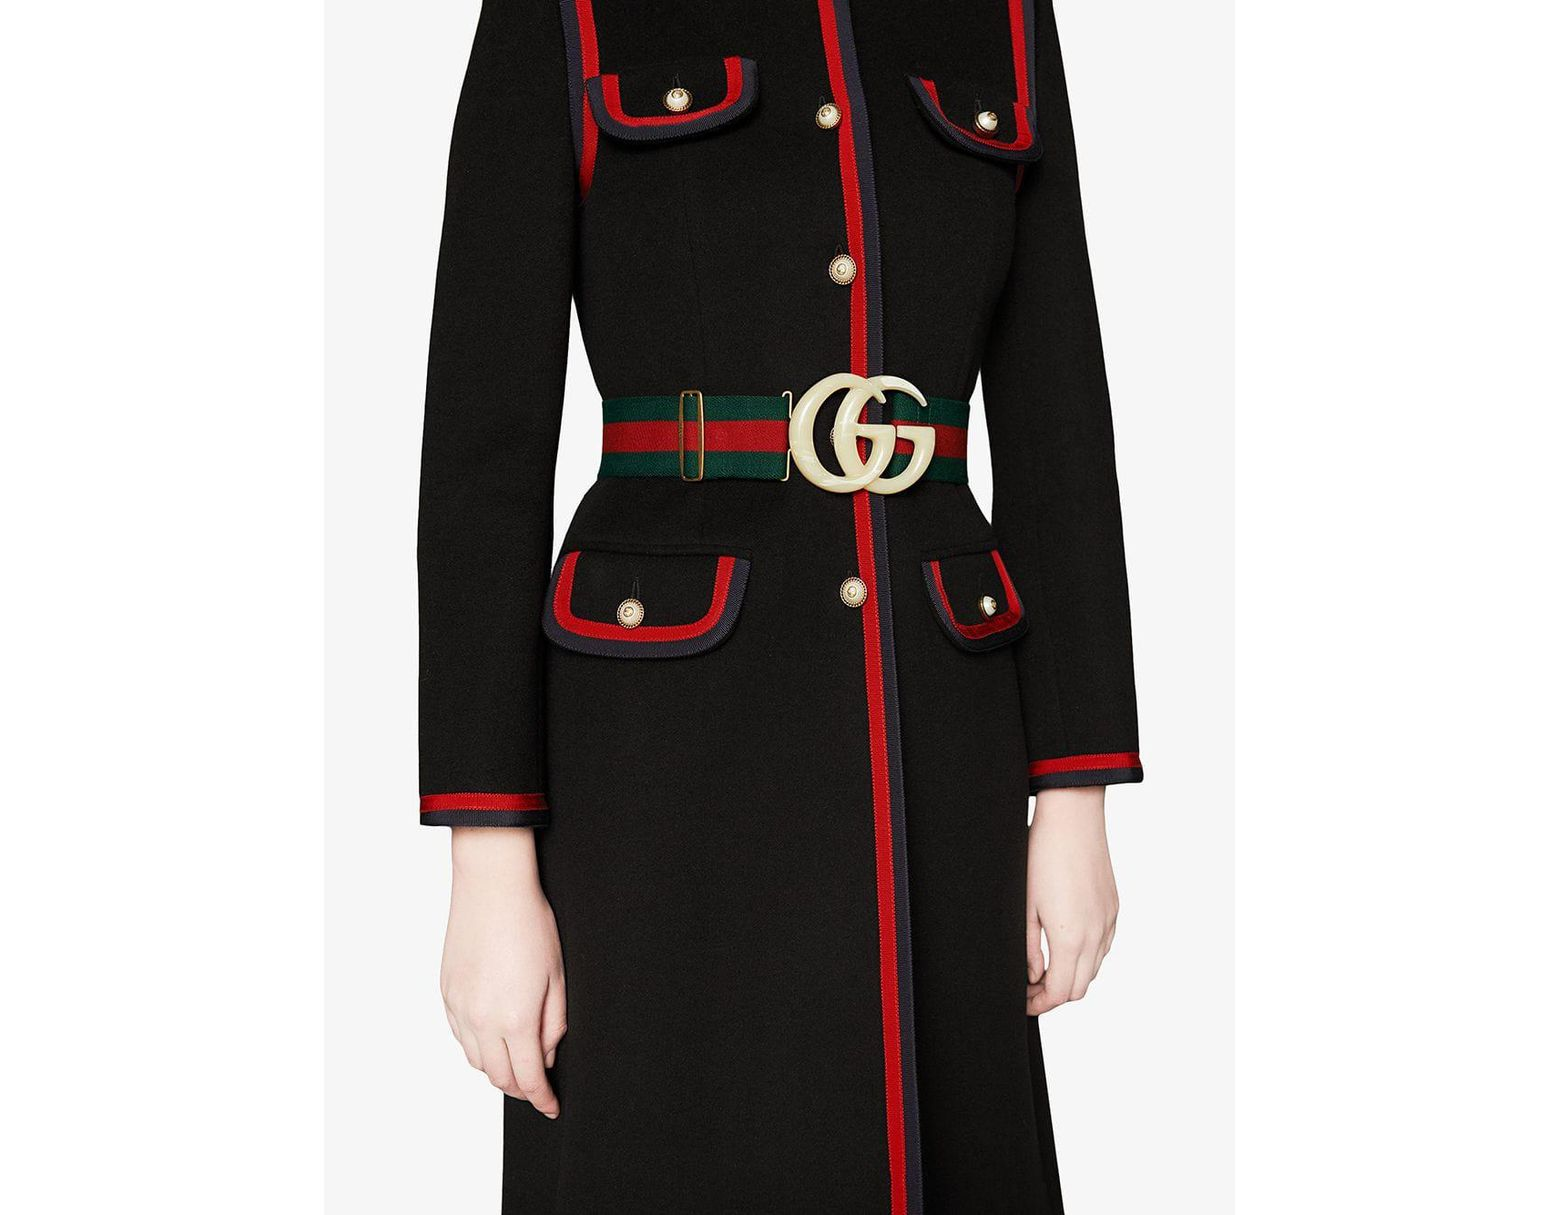 6cd218f9f46 Lyst - Gucci Web Elastic Belt With Embellished GG in Green - Save 43%